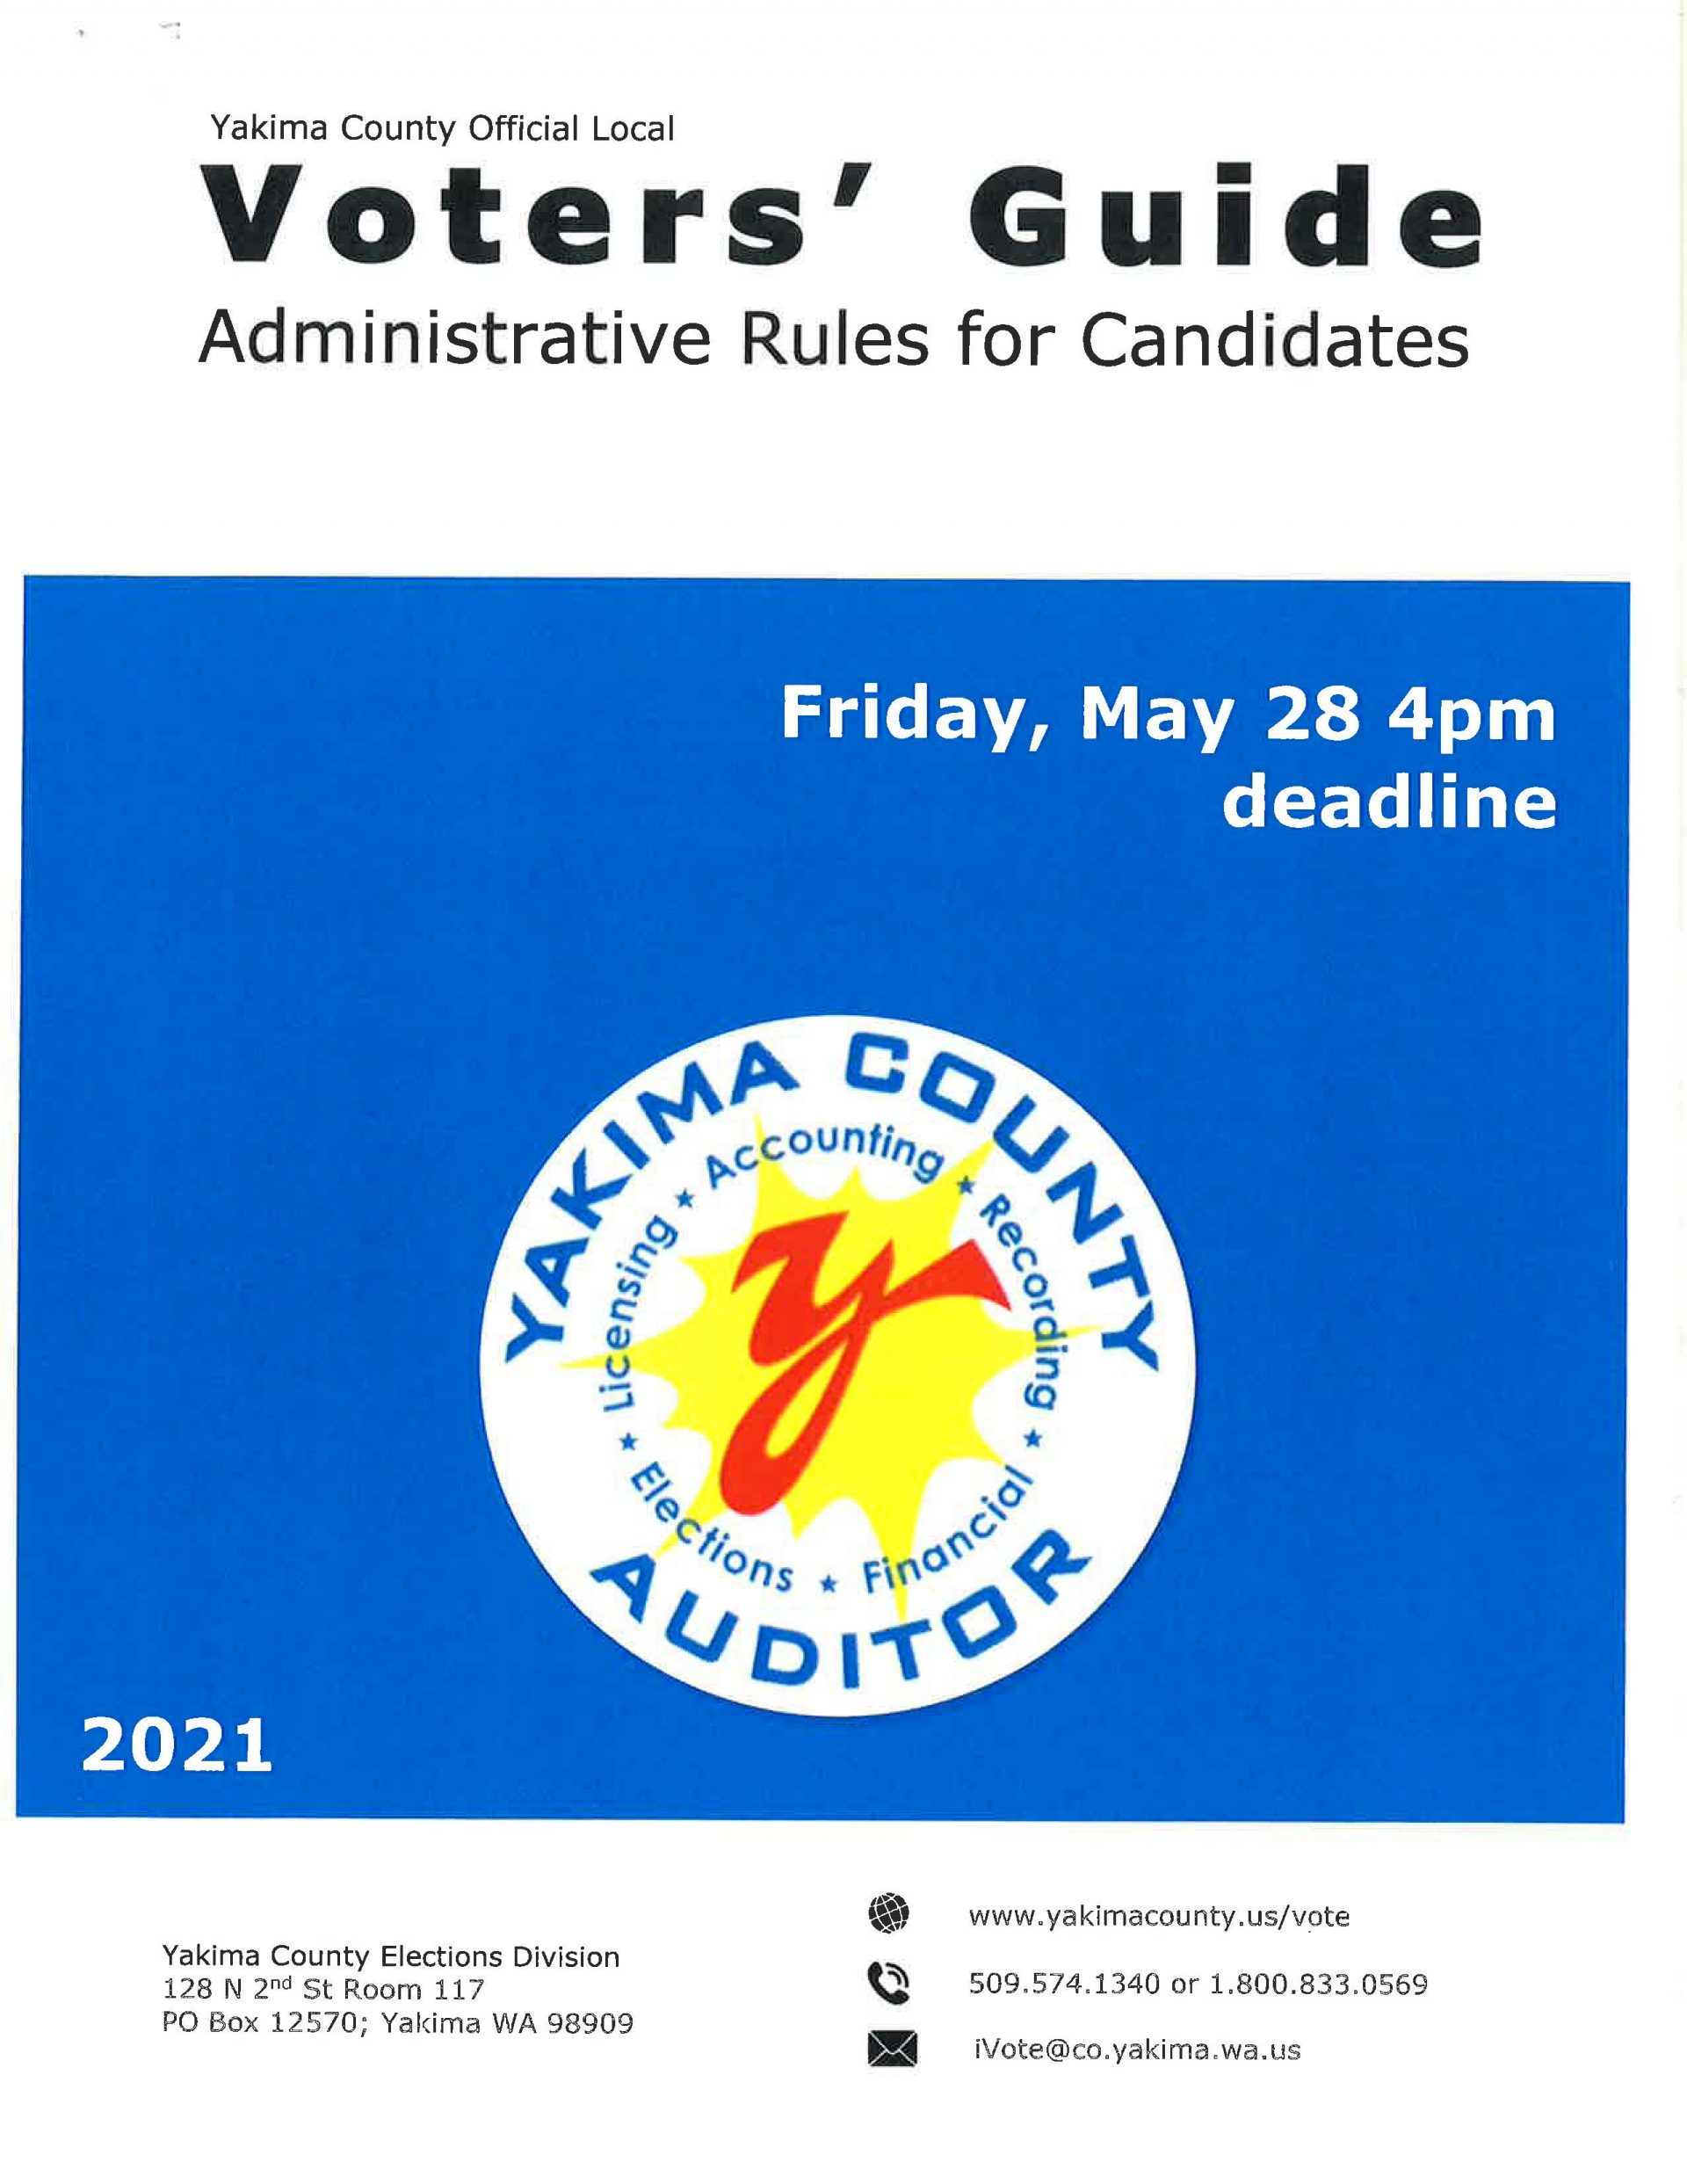 Voters Guide – Rules for Candidates